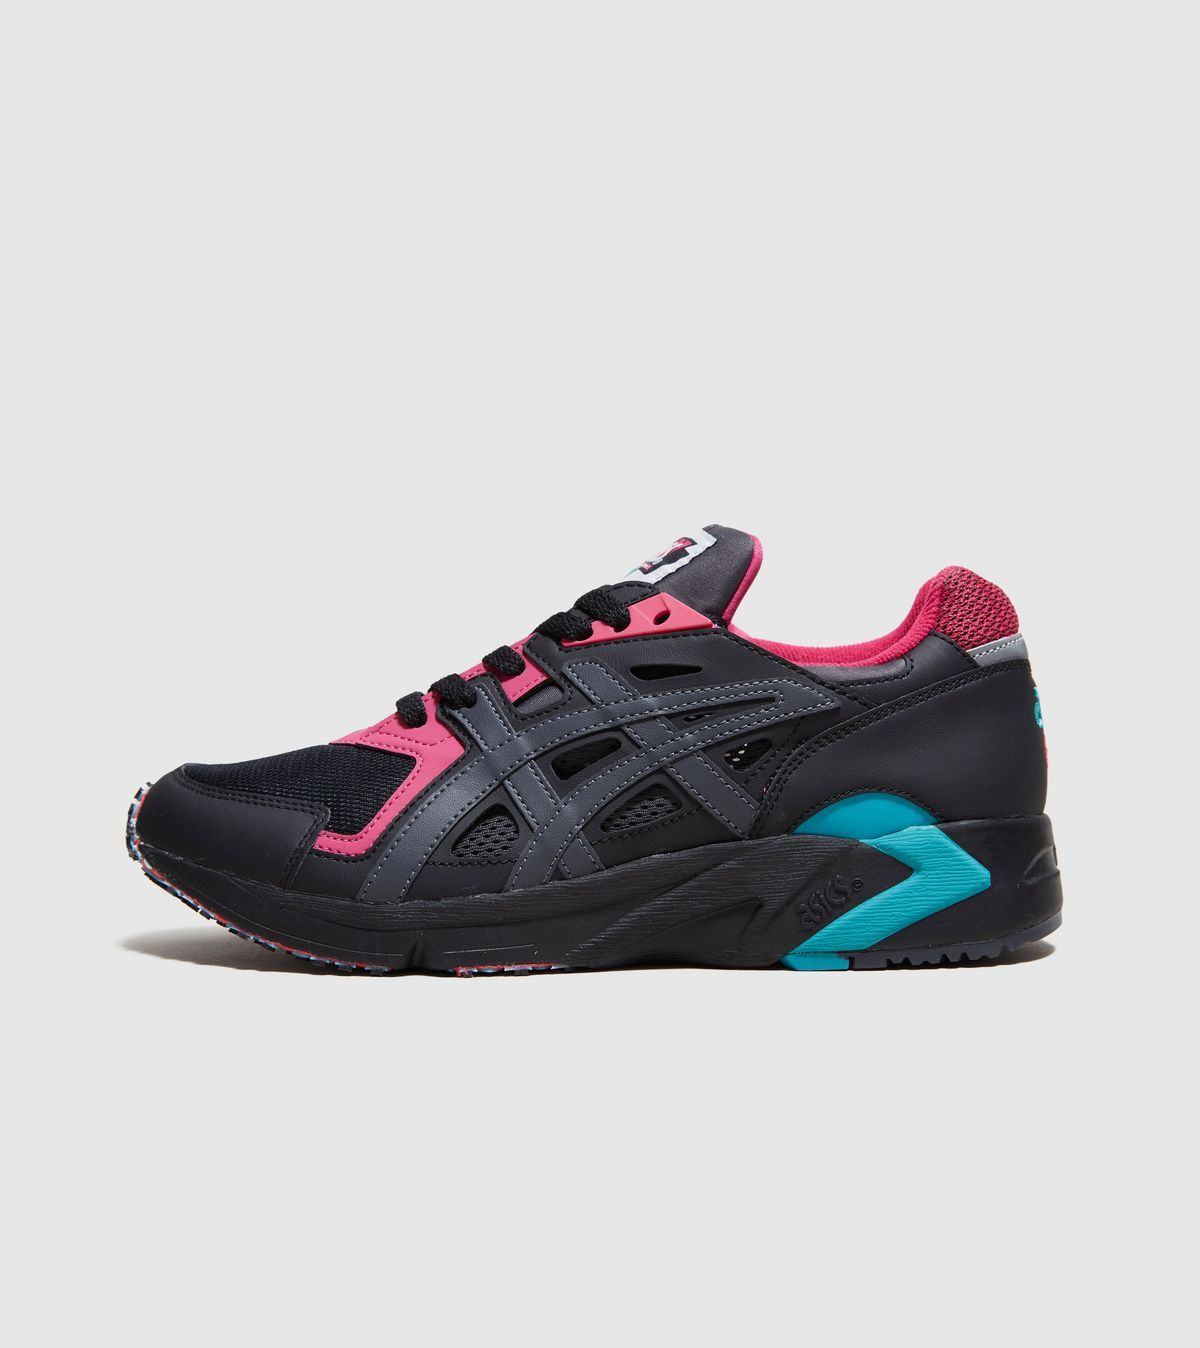 ASICS Pack GEL DS Trainer OG 1995 Pack 19996 OG | 9e5ab67 - beautylady.info